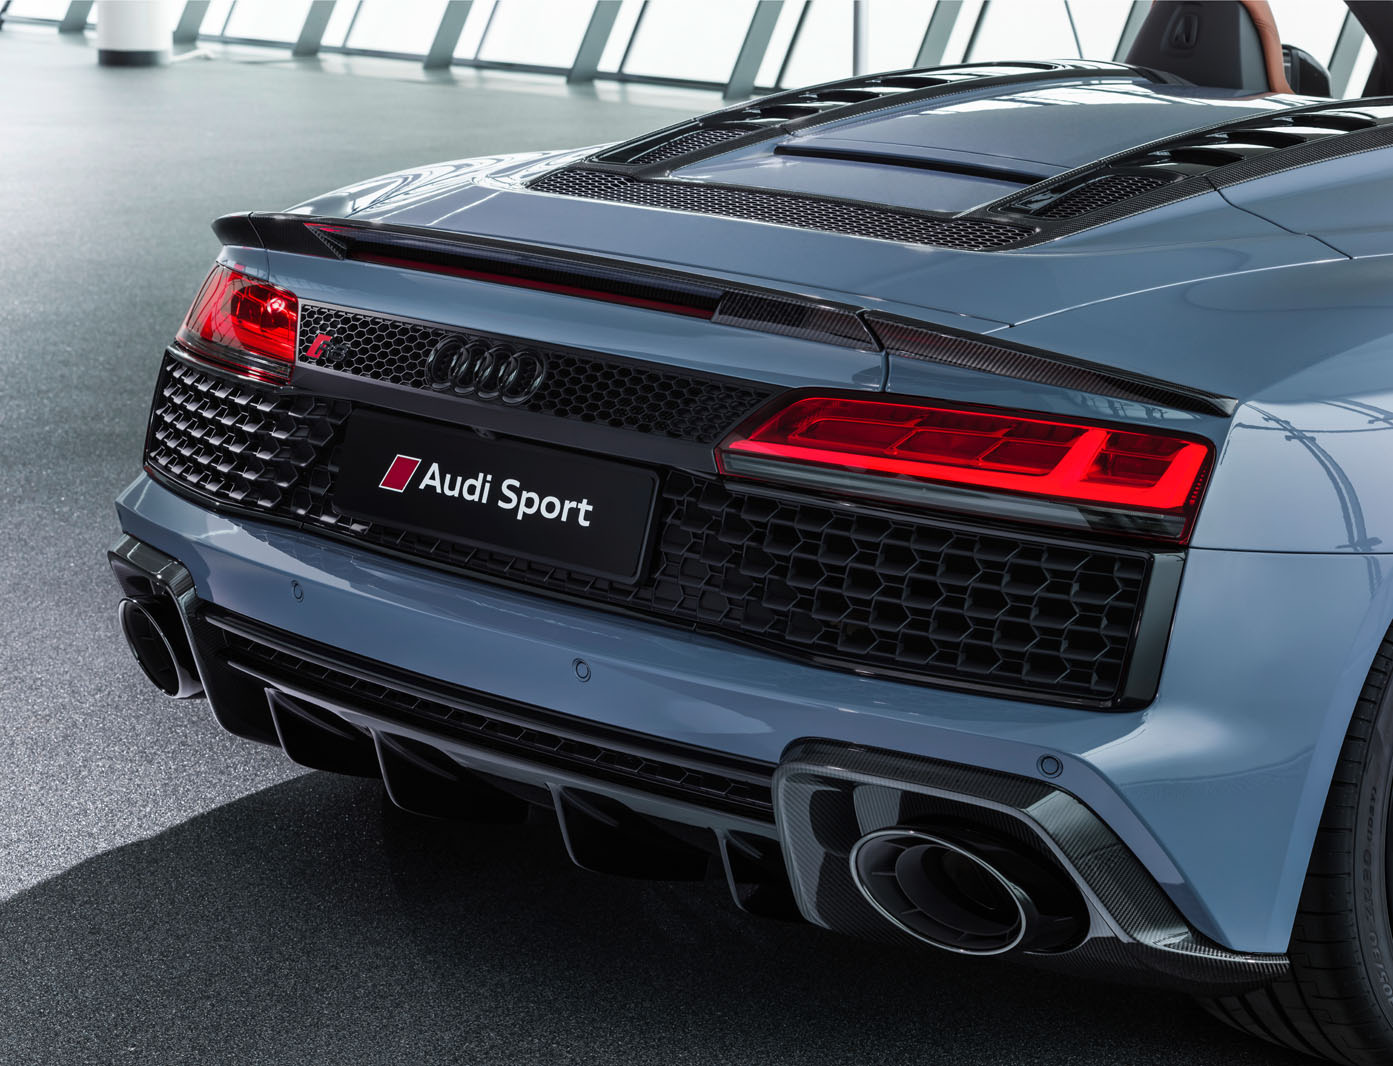 2019 Audi R8 revealed with tweaked design and more power ...